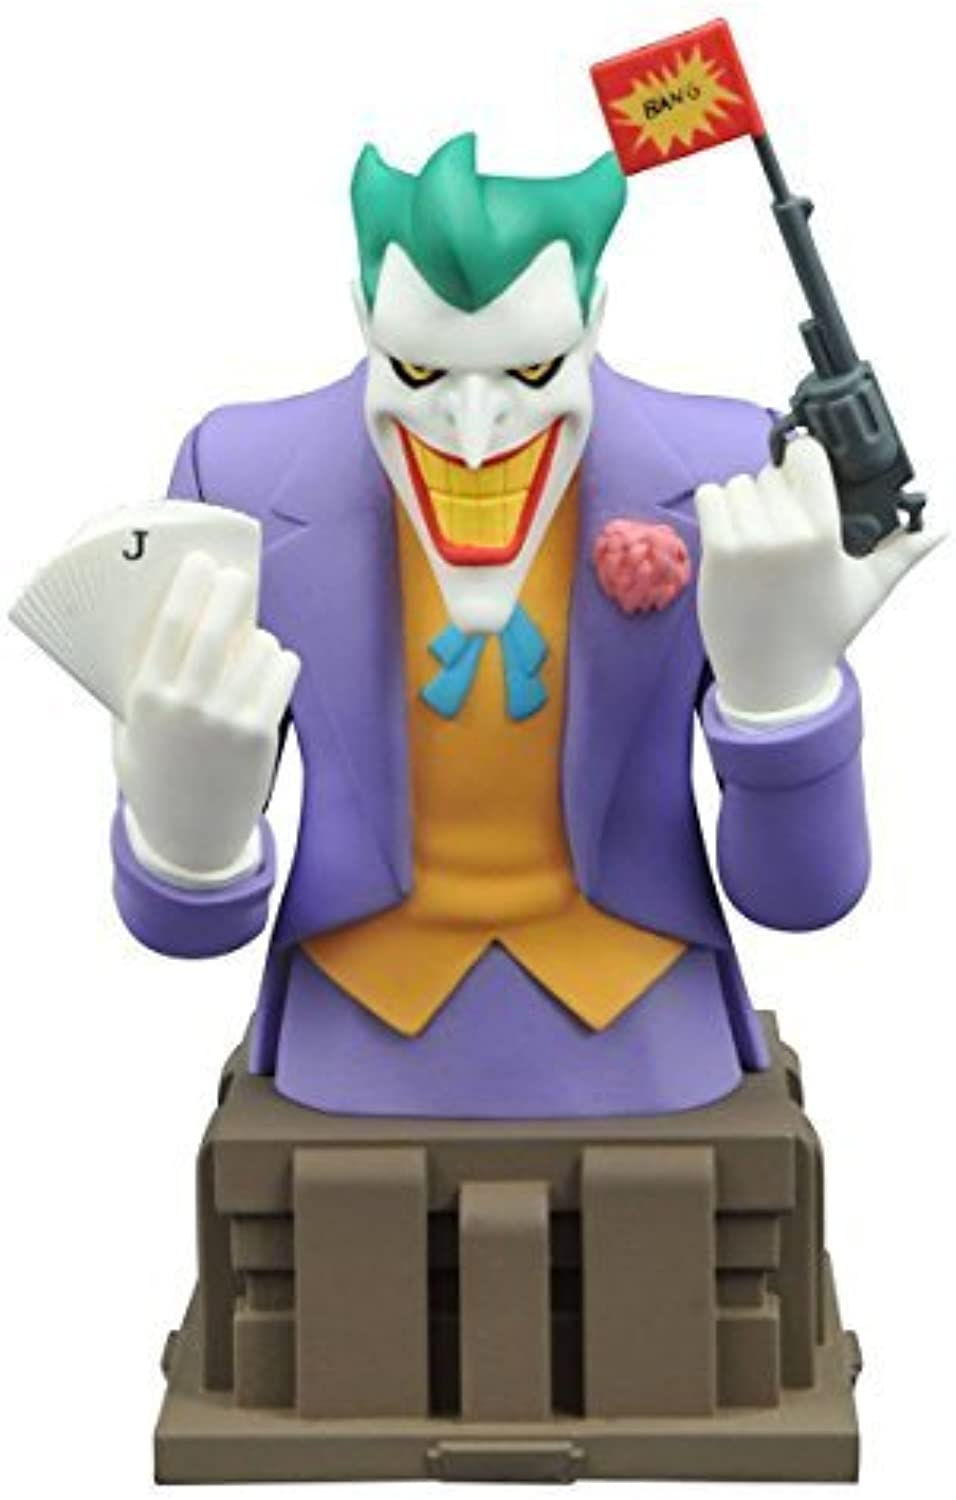 by Worldwide Pieces 3000 of Edition Limited Bust Joker